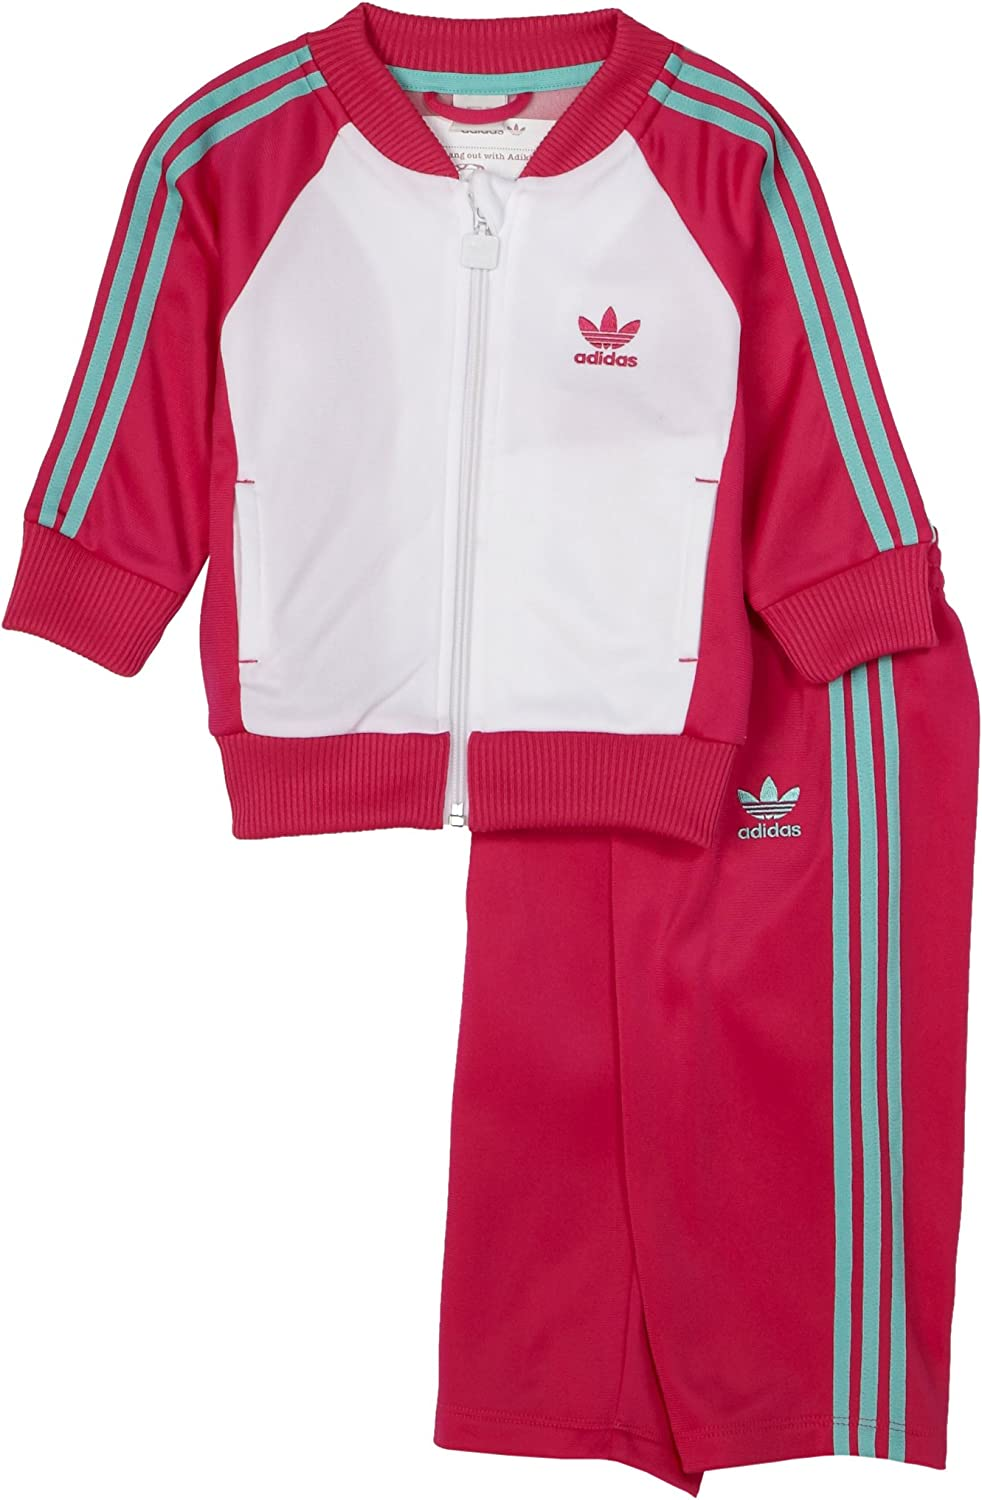 adidas Classic Superstar Tracksuit, White/Pink, 18 Months